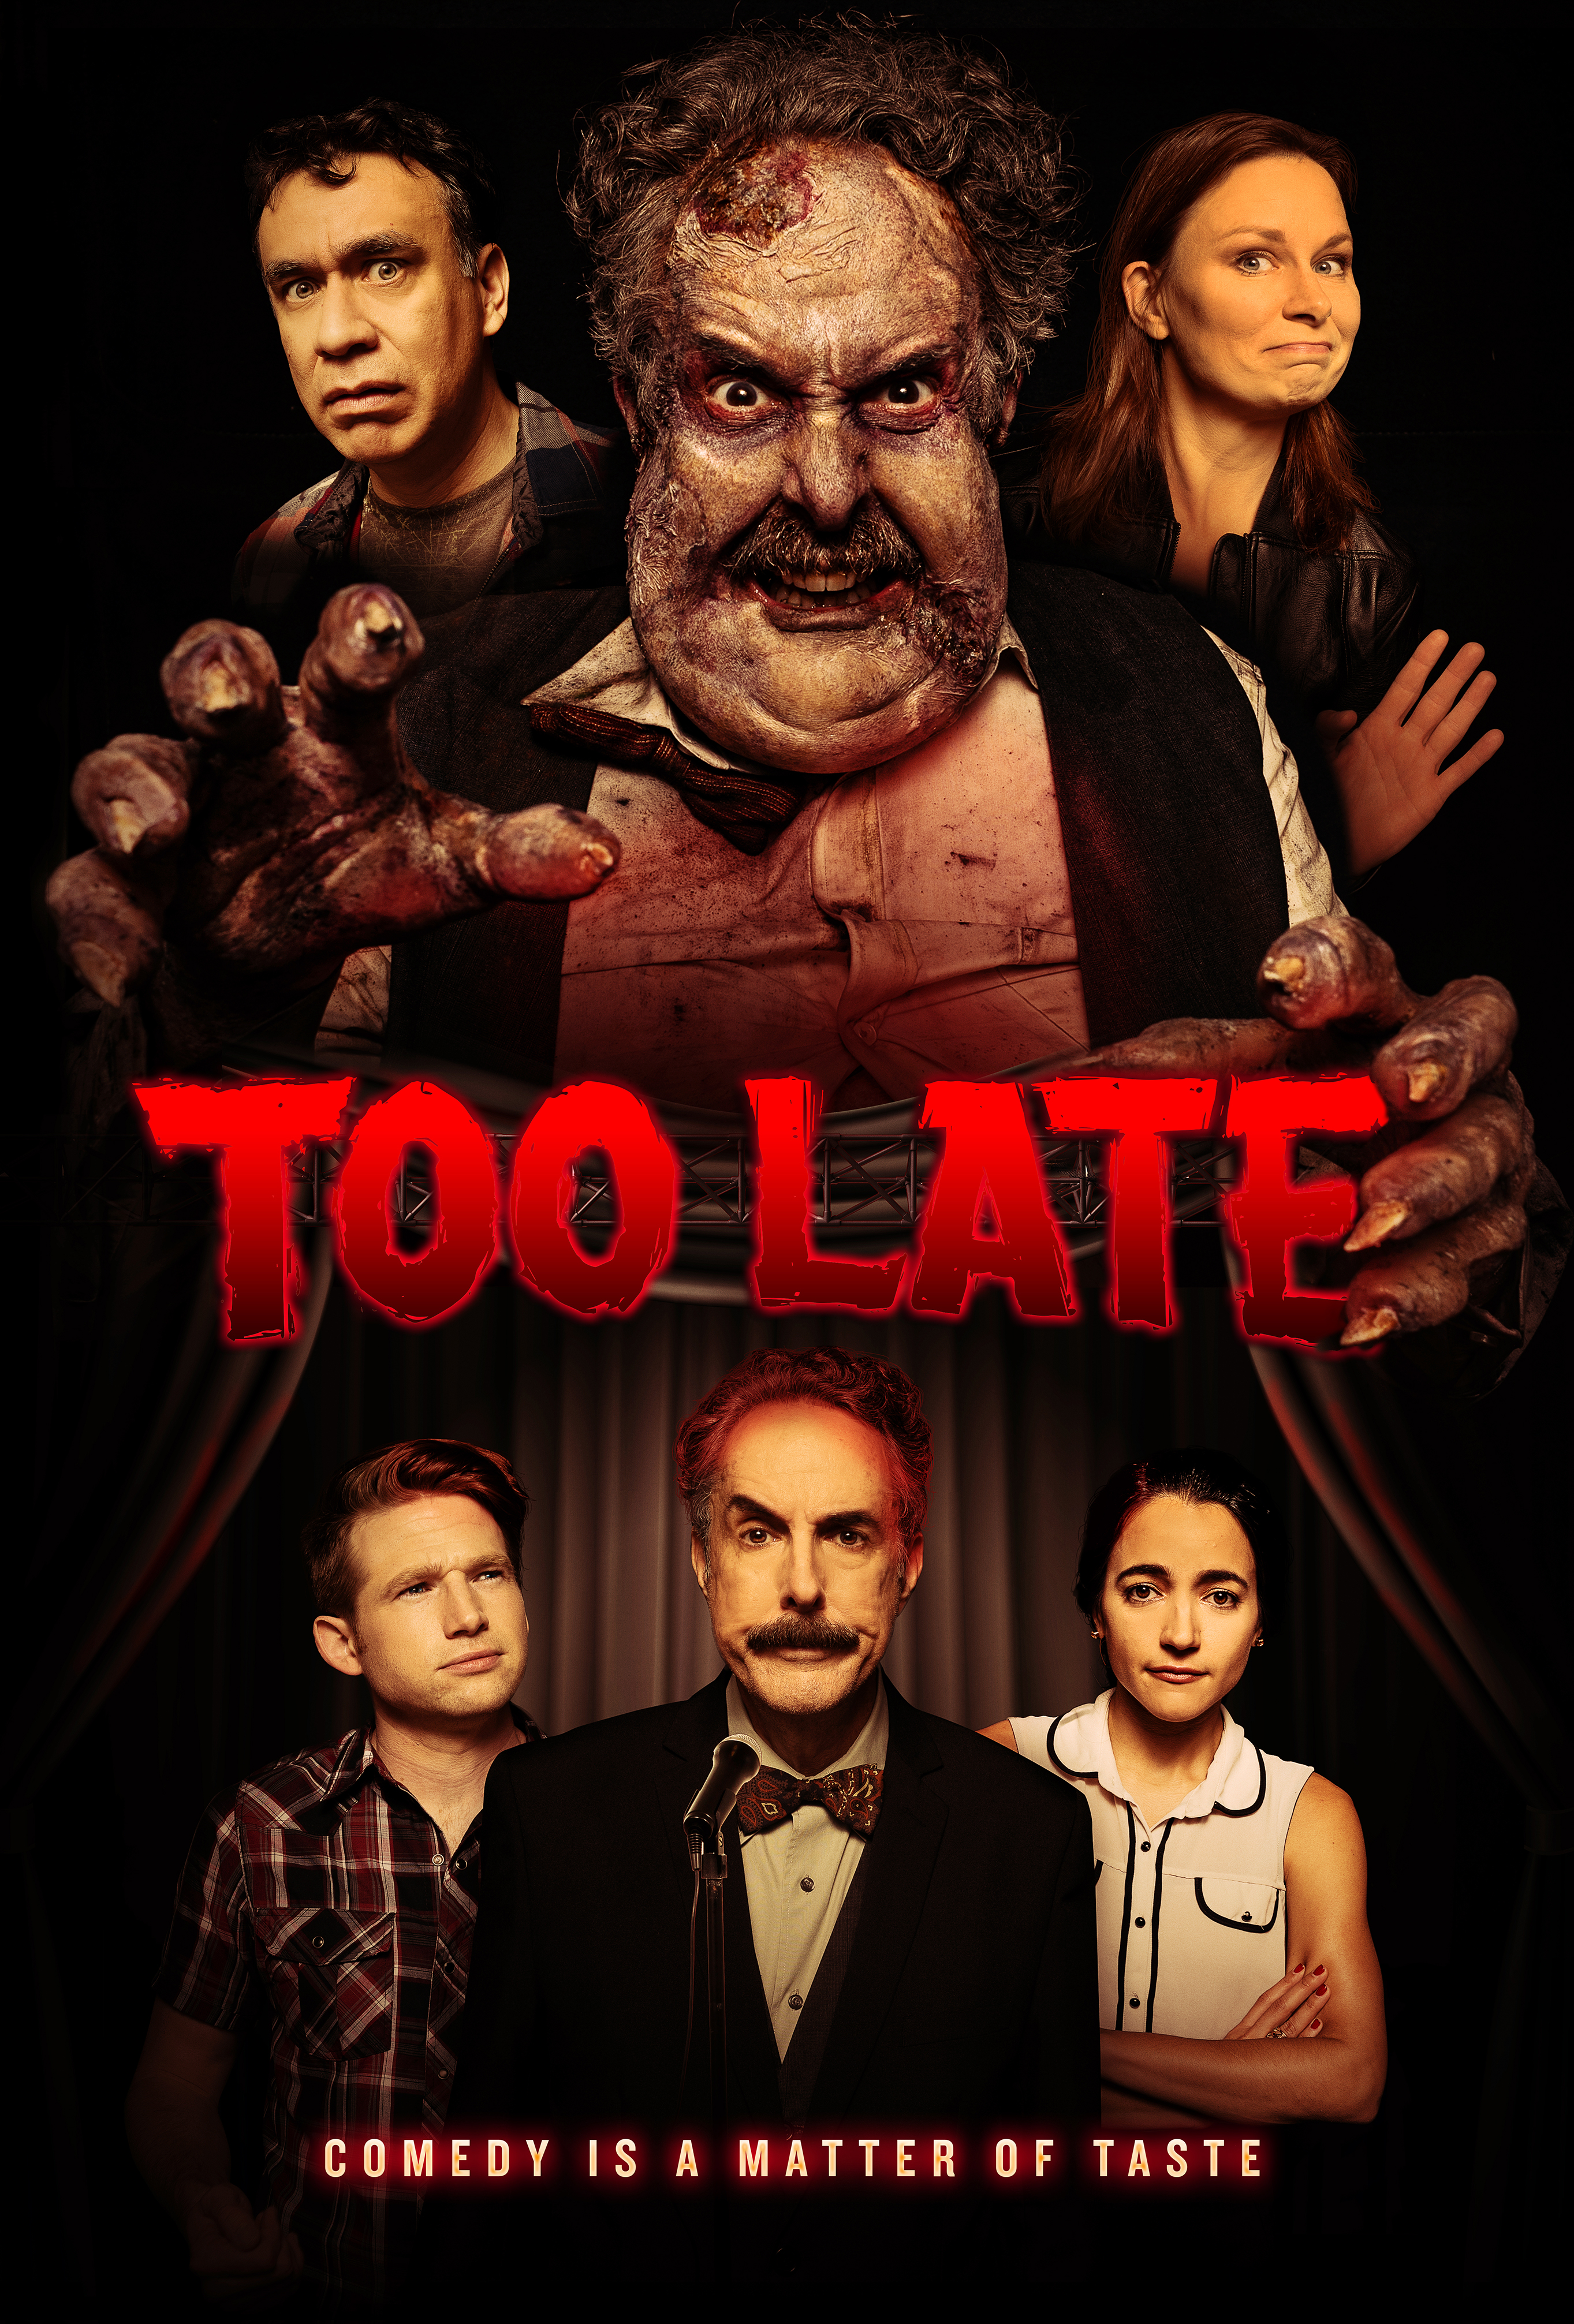 Download Too Late (2021) WebRip 720p Full Movie [In English] With Hindi Subtitles Full Movie Online On 1xcinema.com